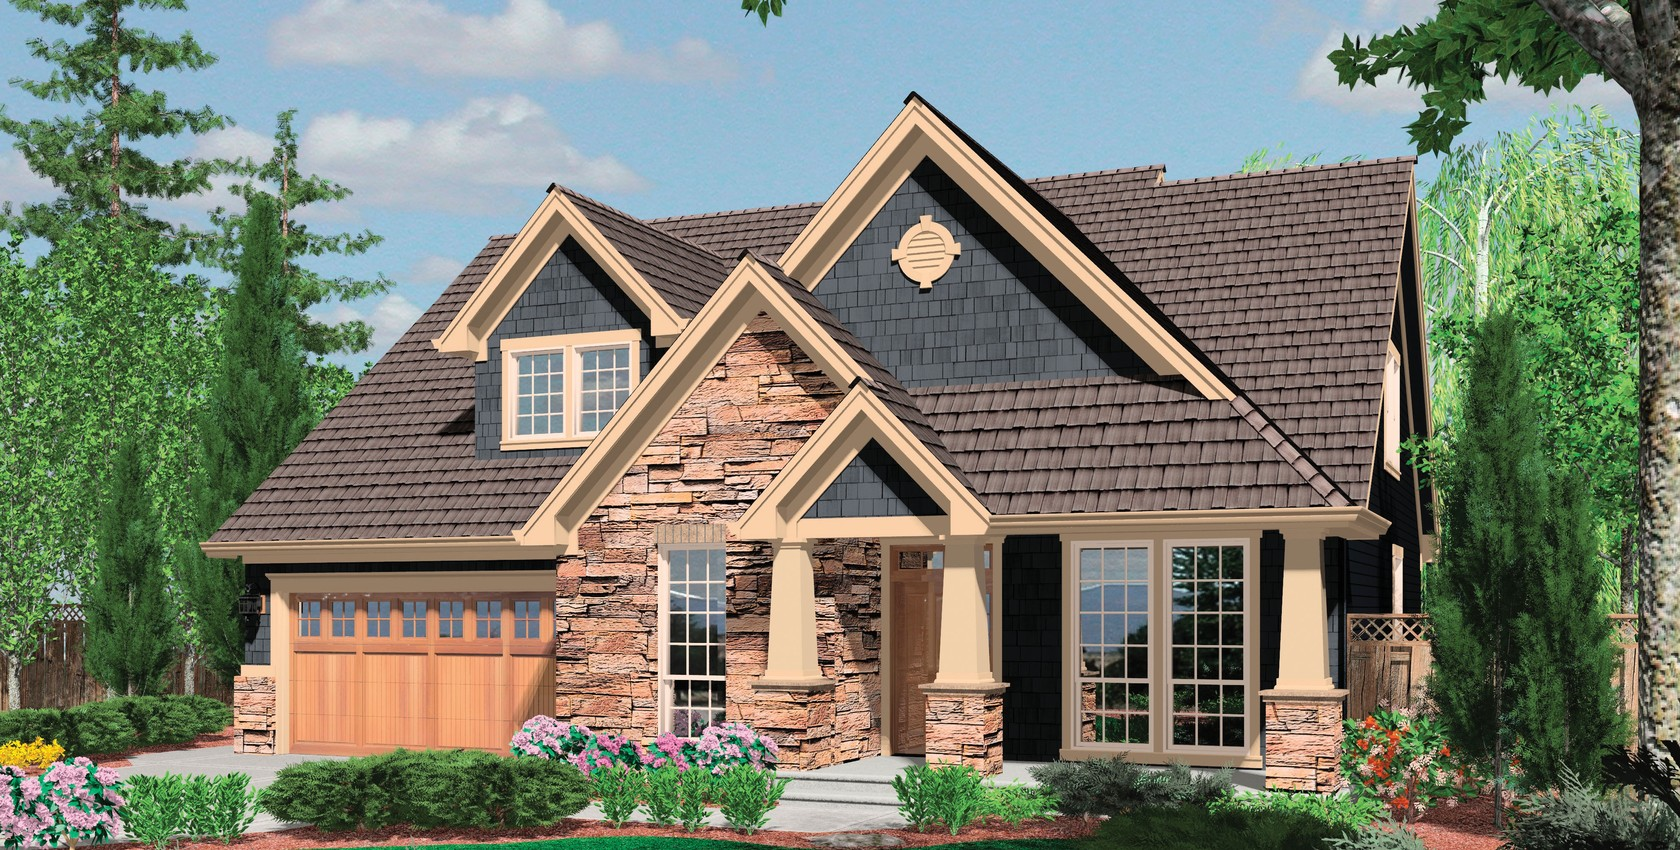 Image for Ackley-Cozy European Cottage Plan with Deluxe Master Suite-3816